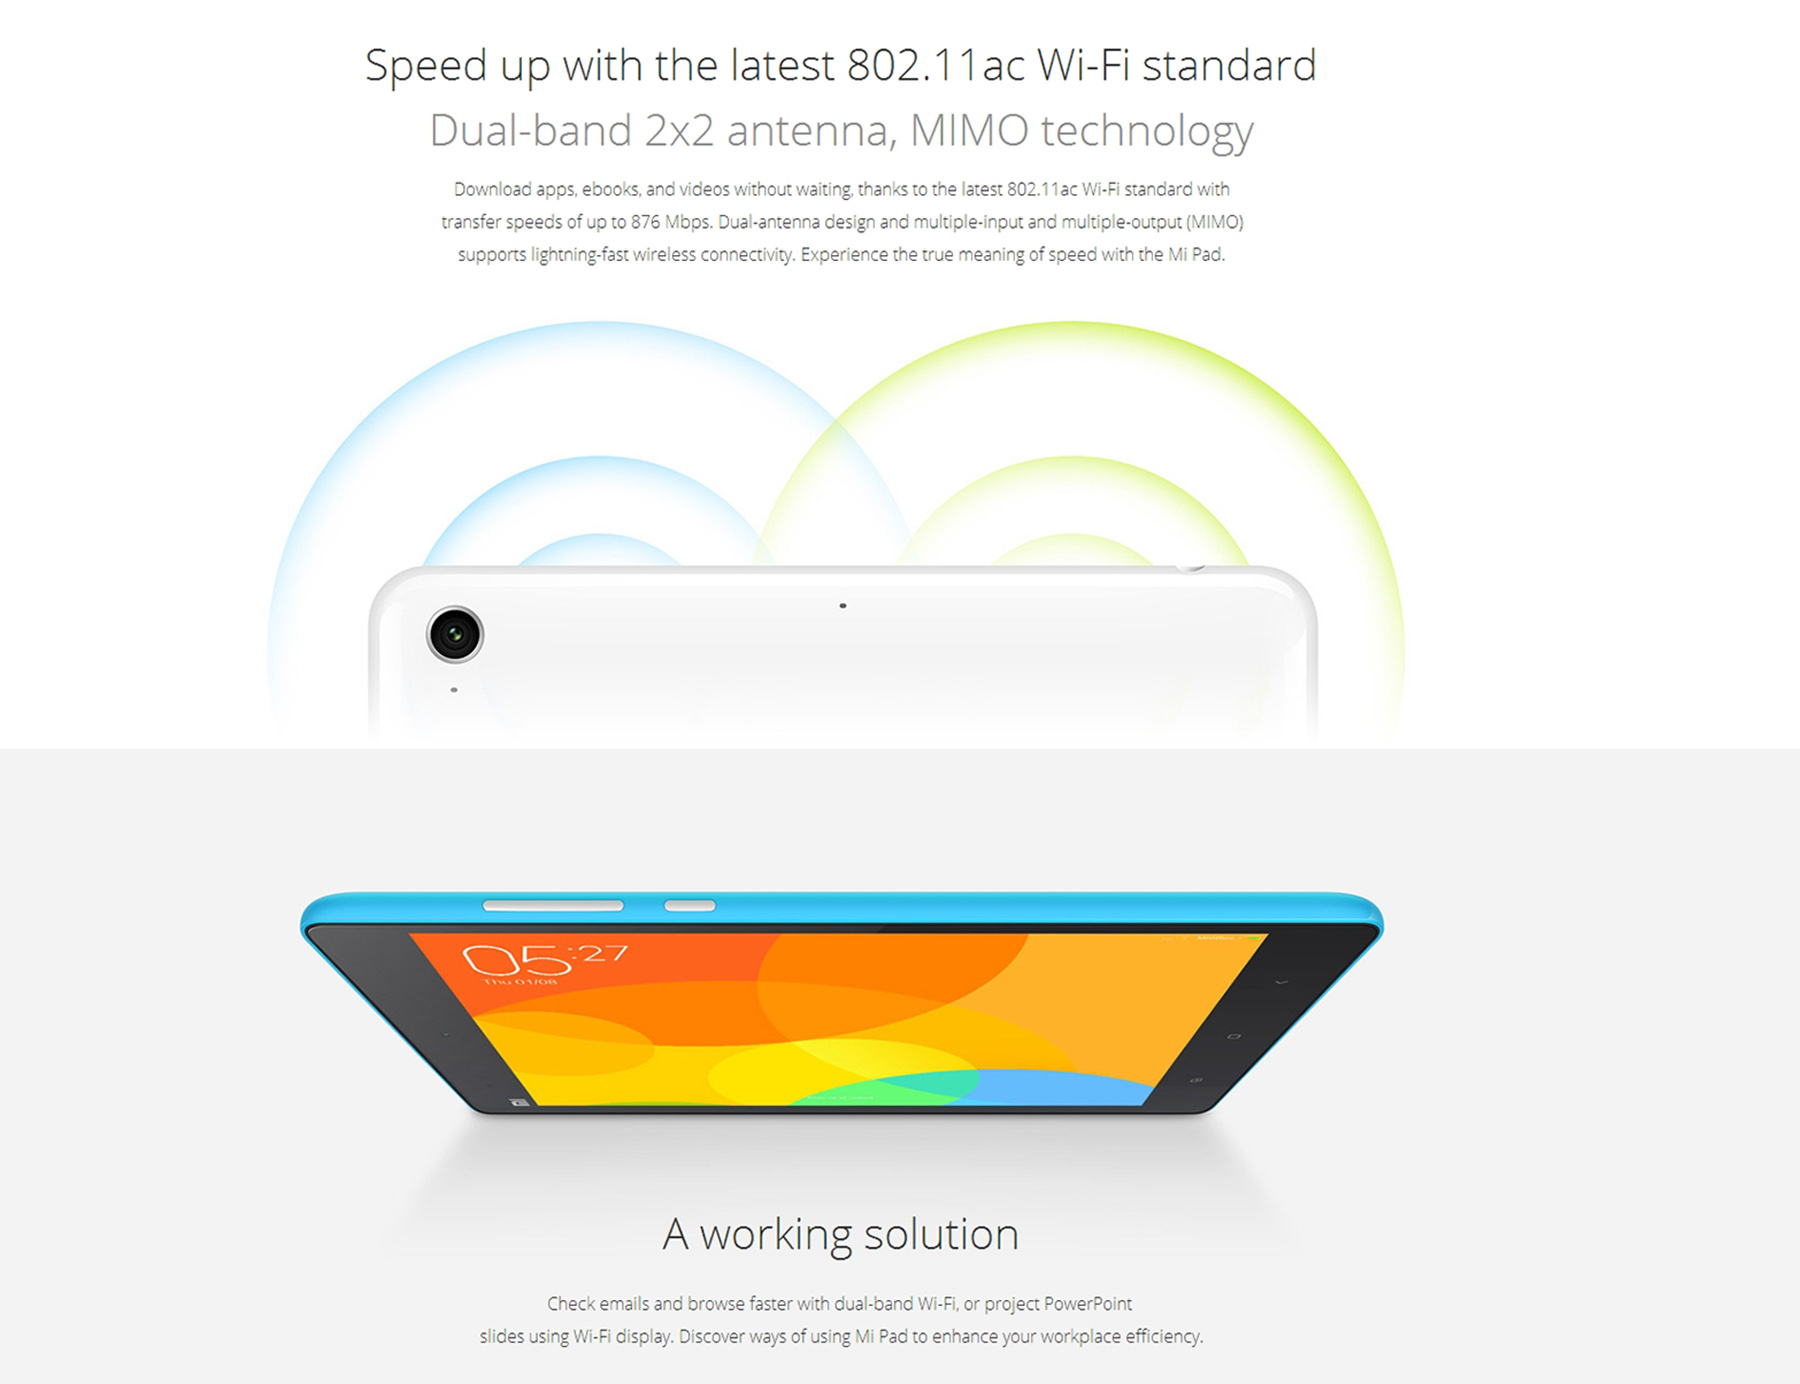 Original xiaomi mi pad 16gb rom 21874 online shopping gearbest wlan wifi 80211 abgnac supports 24ghz and 5ghz bands support video calls online support gyroscopelight sensorgravity sensordigital compass fandeluxe Images